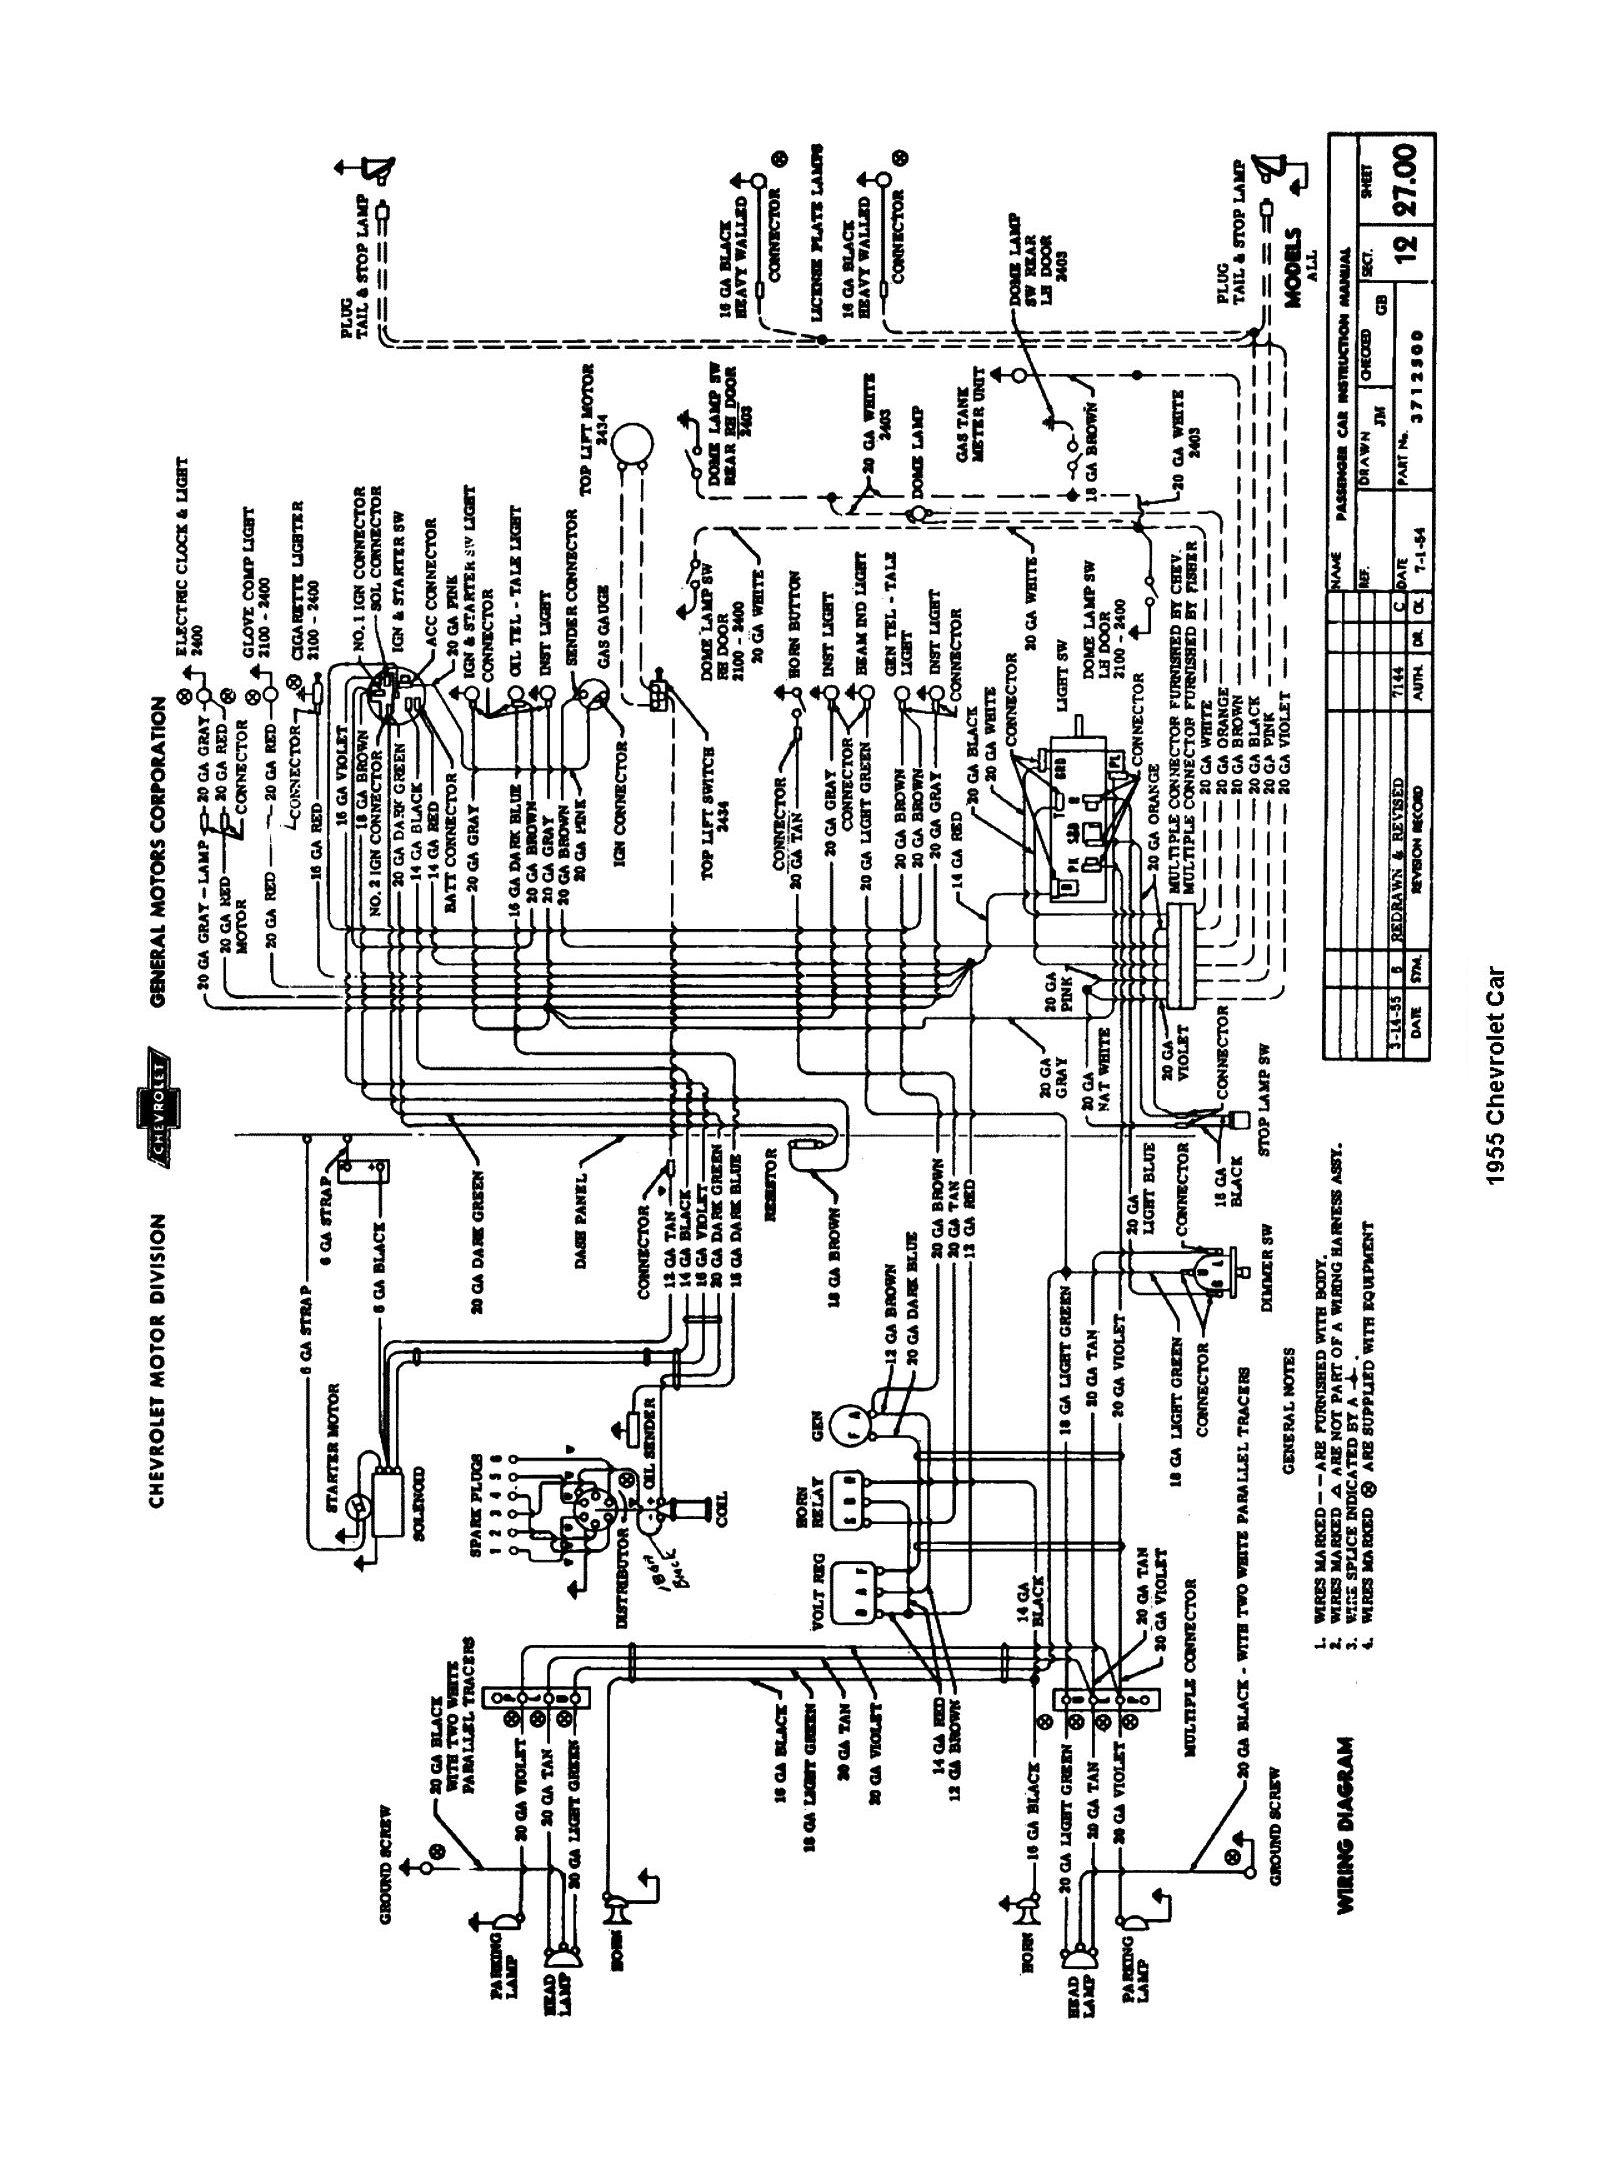 Fabulous International Truck Wiring Diagram Manual Download Wiring Diagram Wiring Digital Resources Remcakbiperorg